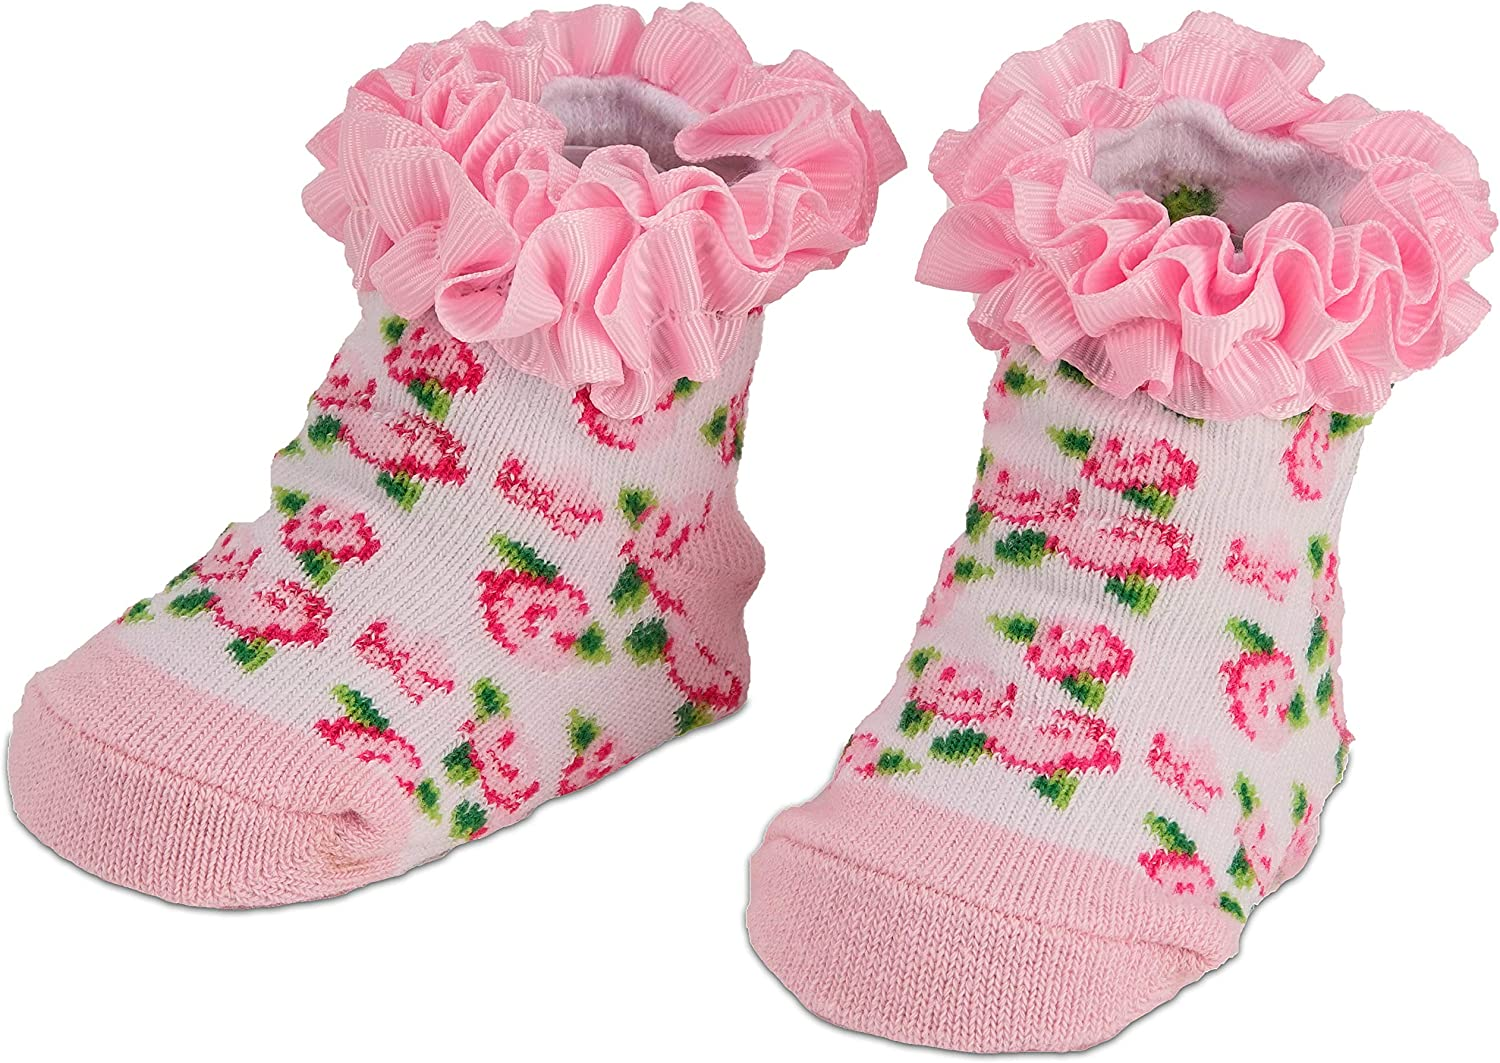 BRUBAKER 3 Pairs of Baby Socks Girls Boys 0-12 Months Stripes and Triangles